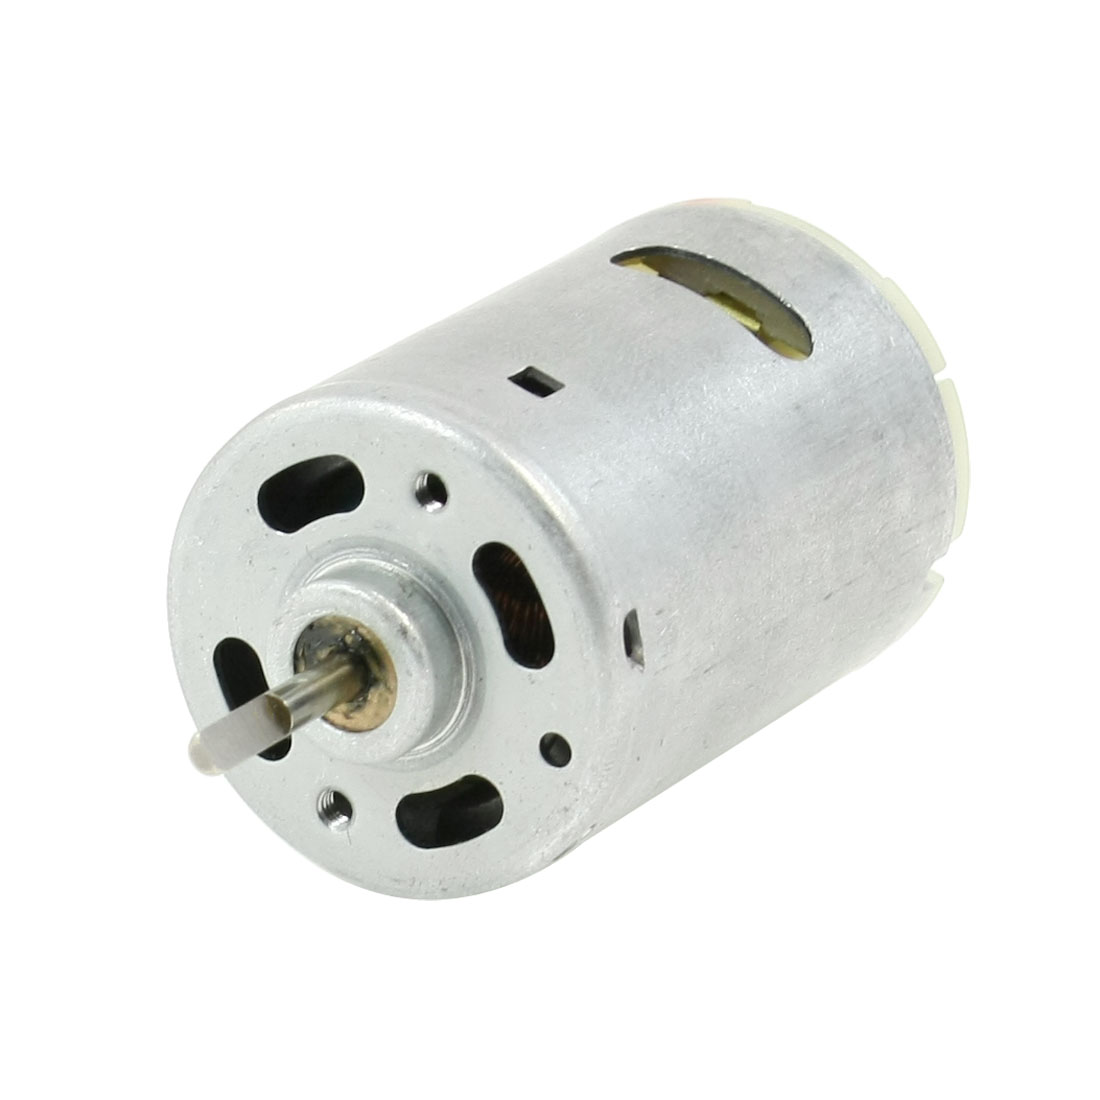 12000RPM 12V 0.6A High Torque Cylinder Magnetic Electric Mini DC Motor